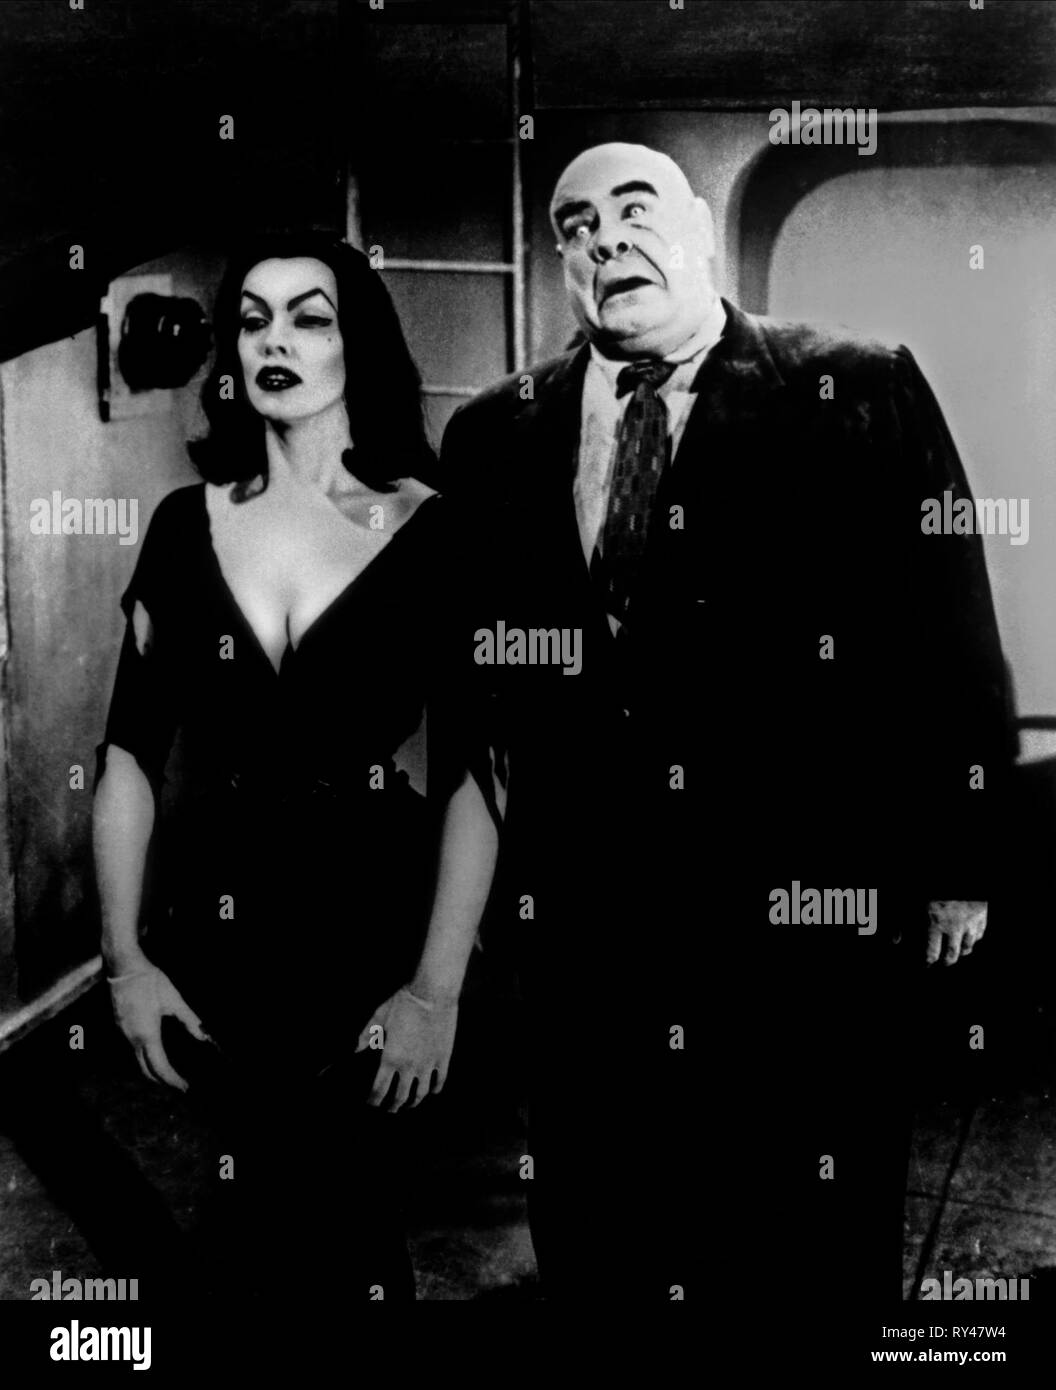 VAMPIRE,WOOD, PLAN 9 FROM OUTER SPACE, 1959 - Stock Image